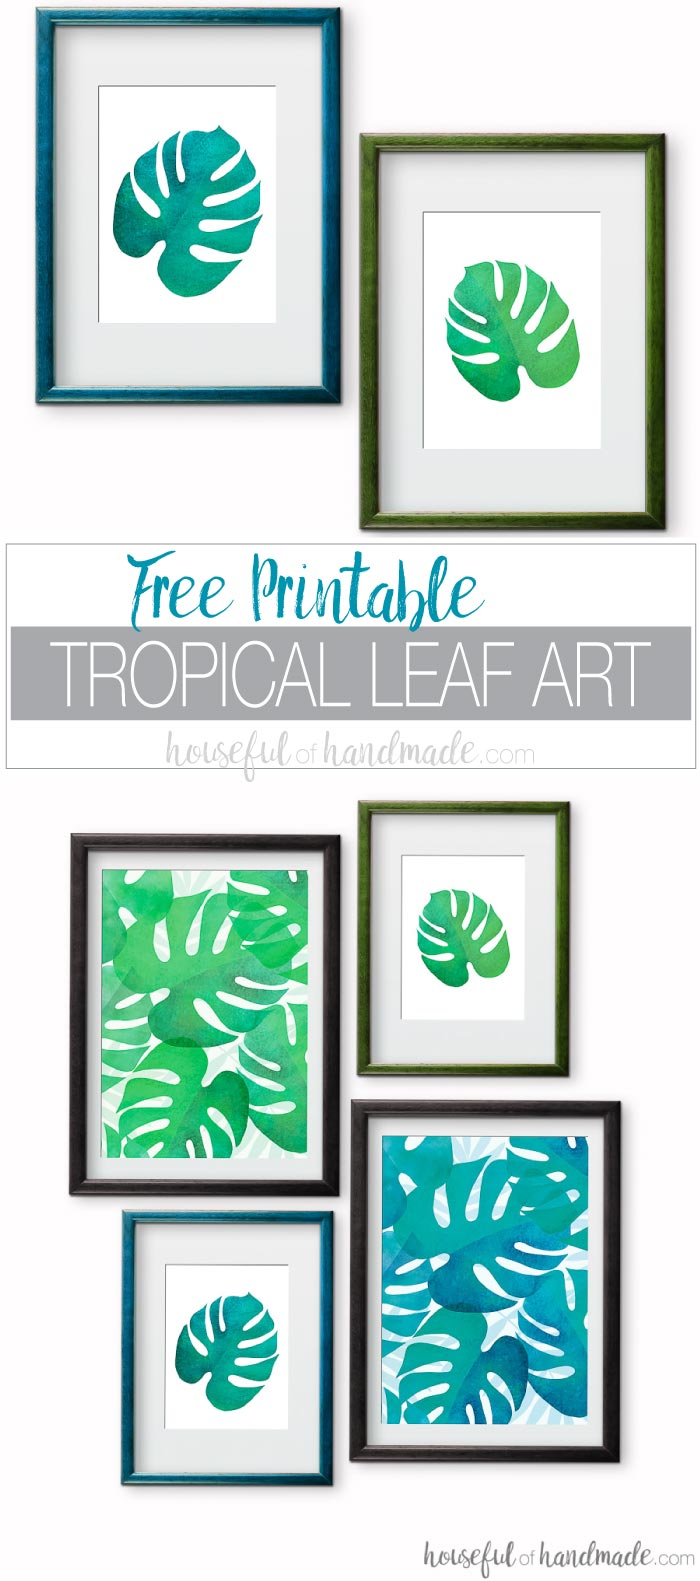 Summer decorating means bringing a little bit of island life to the home. These free printable tropical leaf prints are the perfect way to add island decor to any space on a budget. The bright green and blue palm leaf art is perfect for adding a boho tropical vibe to any space. Download the 4 different designs today!